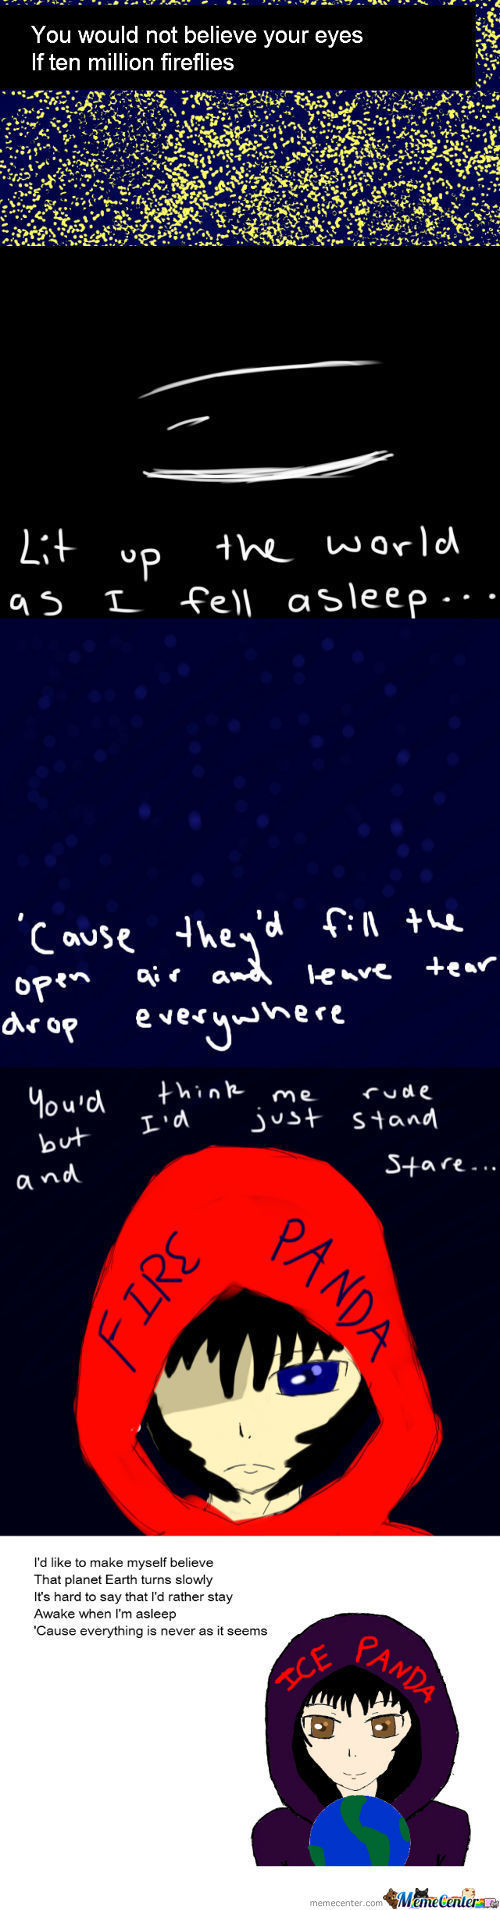 Fireflies By Owlcity